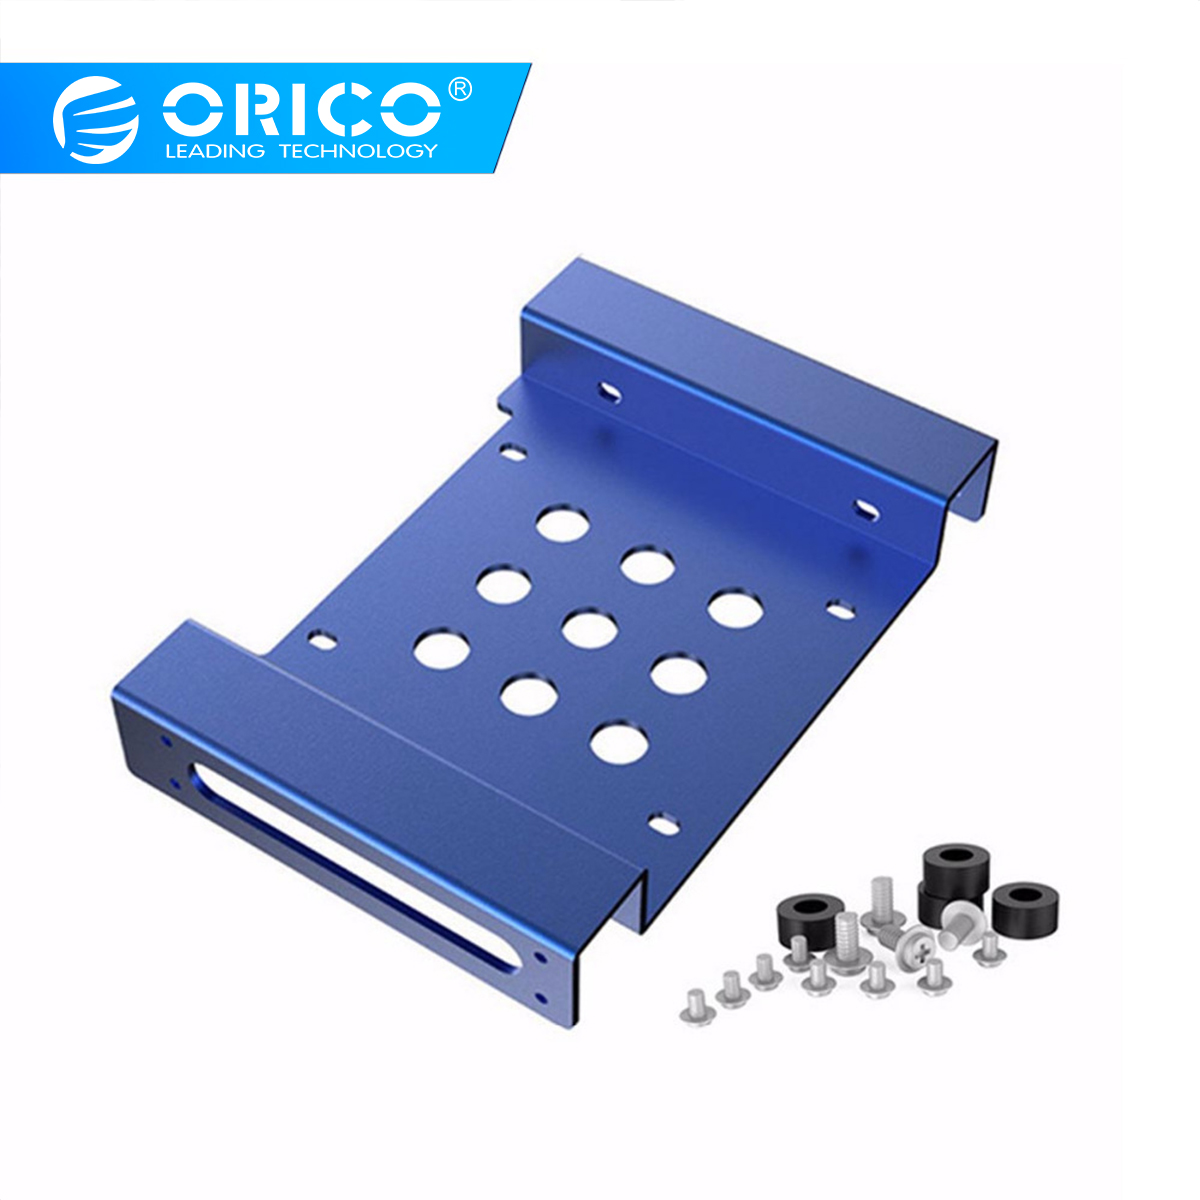 ORICO Aluminum 5.25 inch to 2.5 or 3.5 Inch Internal Hard Disk Drive Mounting Kit with Screws and SHOCK Absorption Rubber Washer